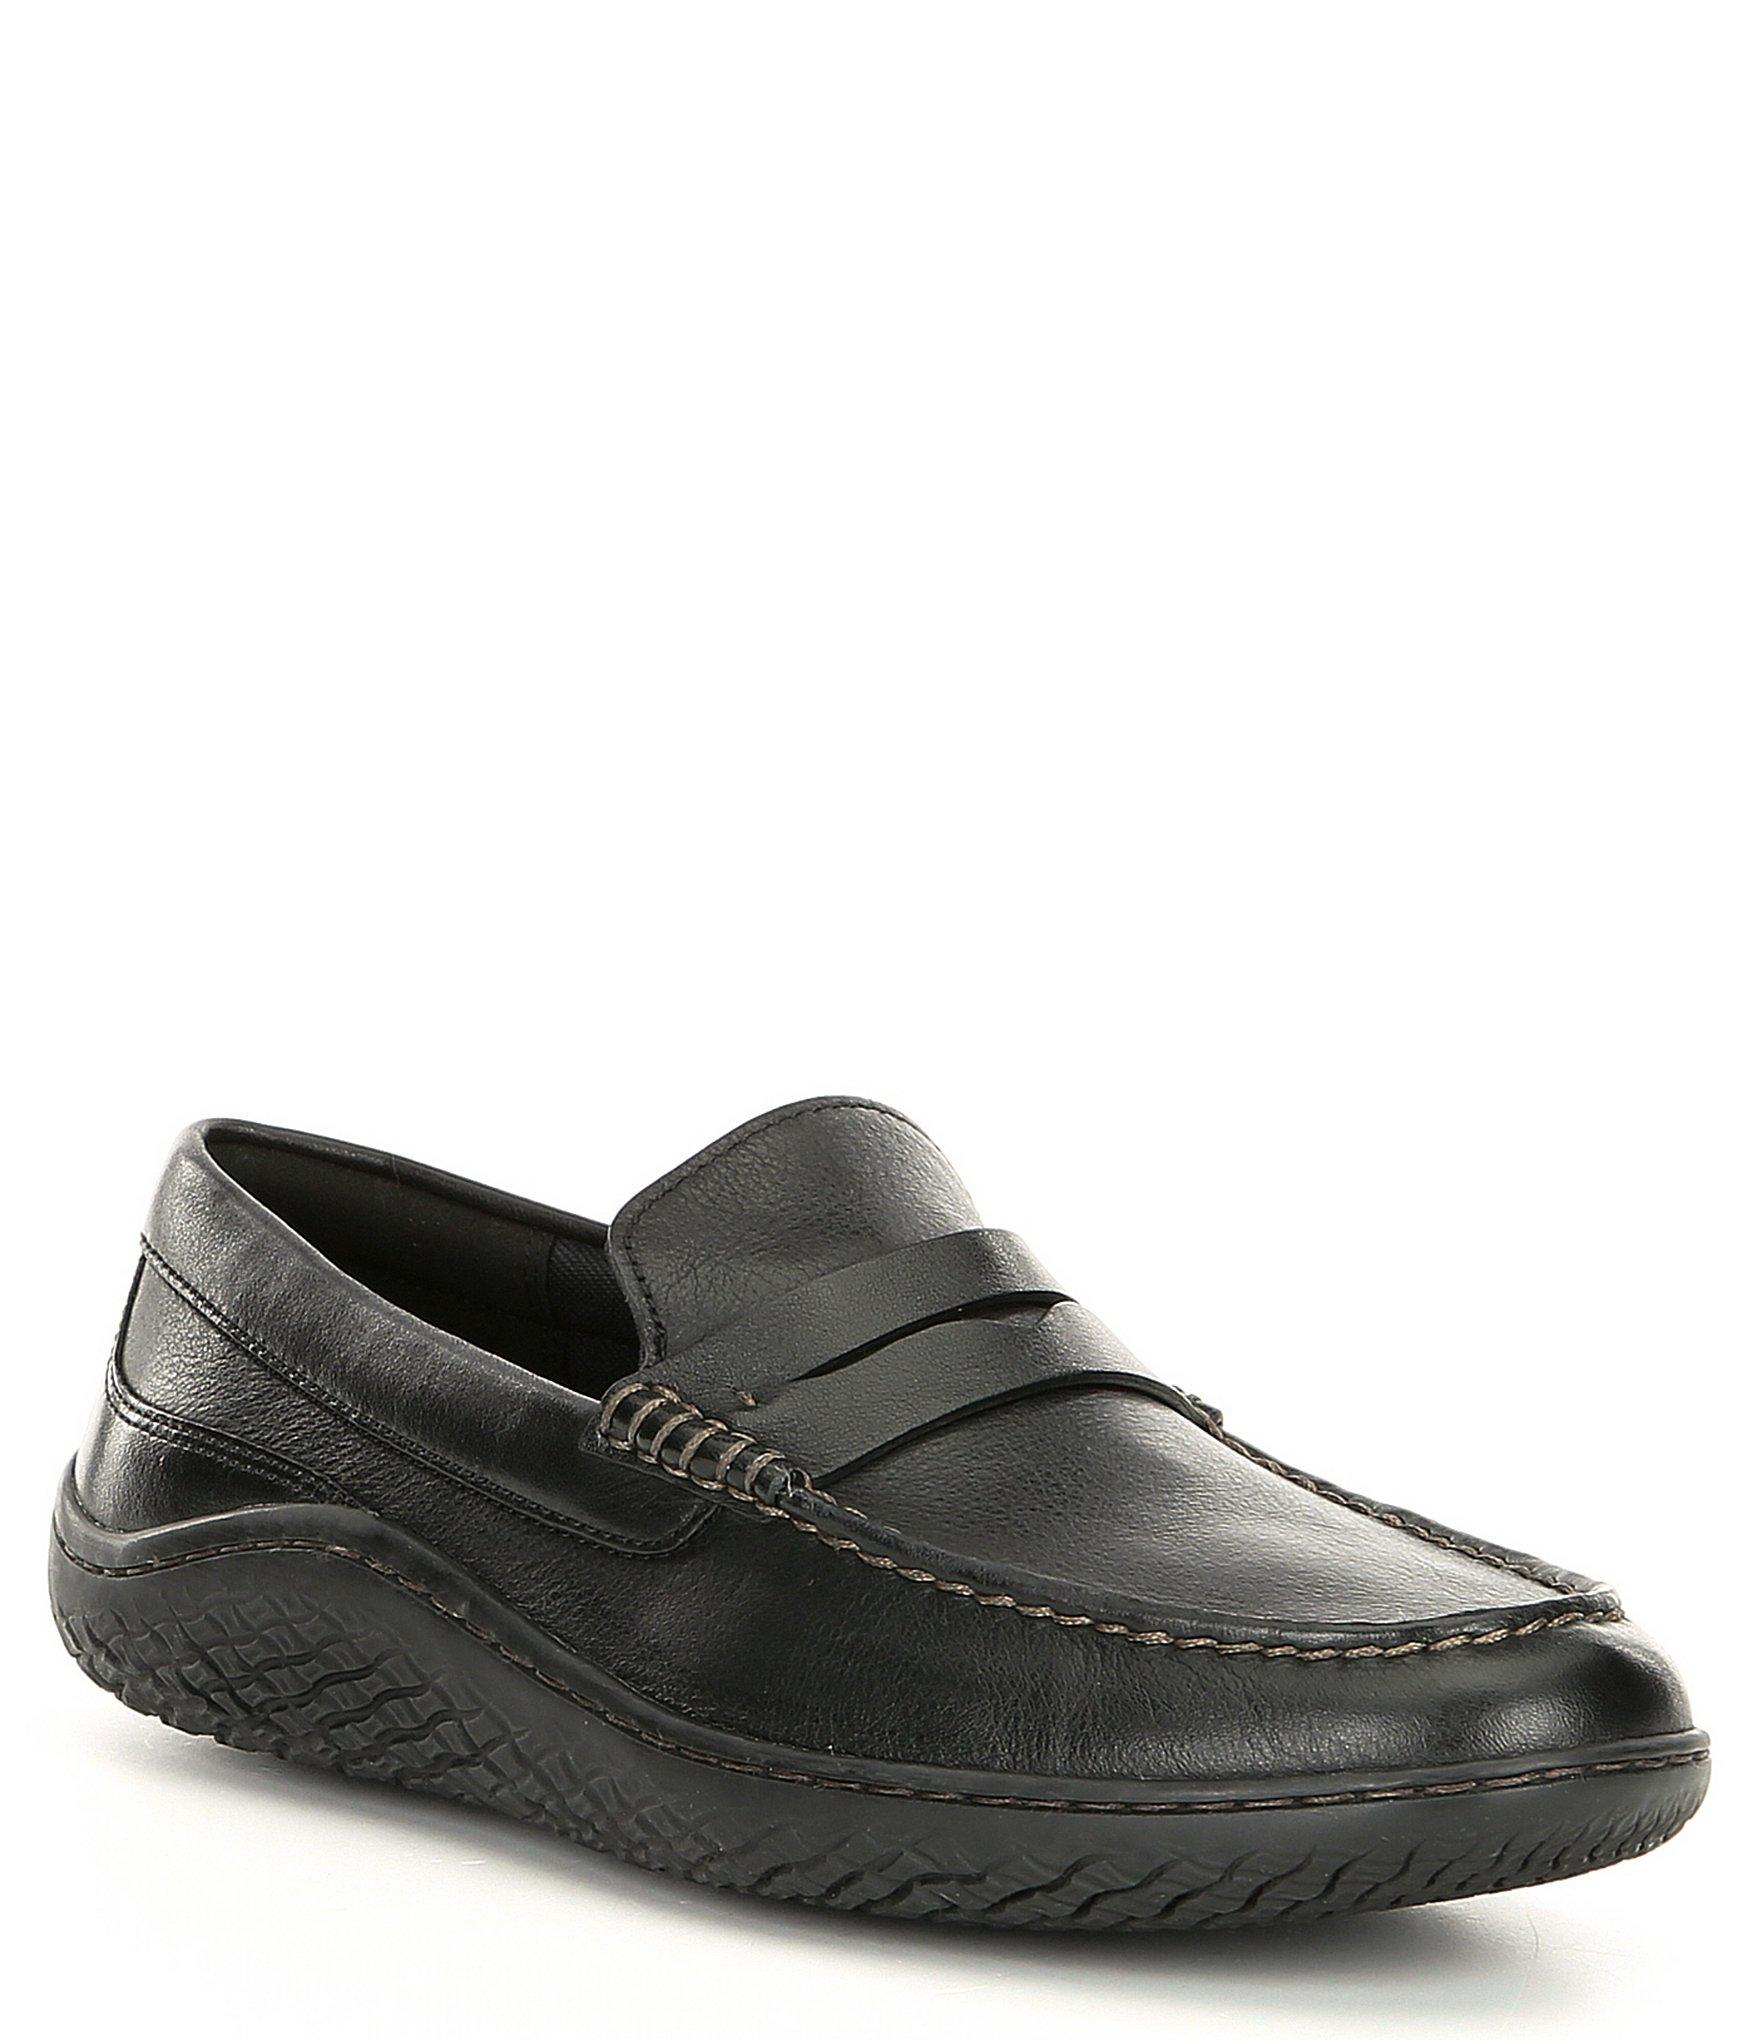 fbac7c41fd3 Lyst - Cole Haan Men s Motogrand Traveler Leather Penny Loafer in ...